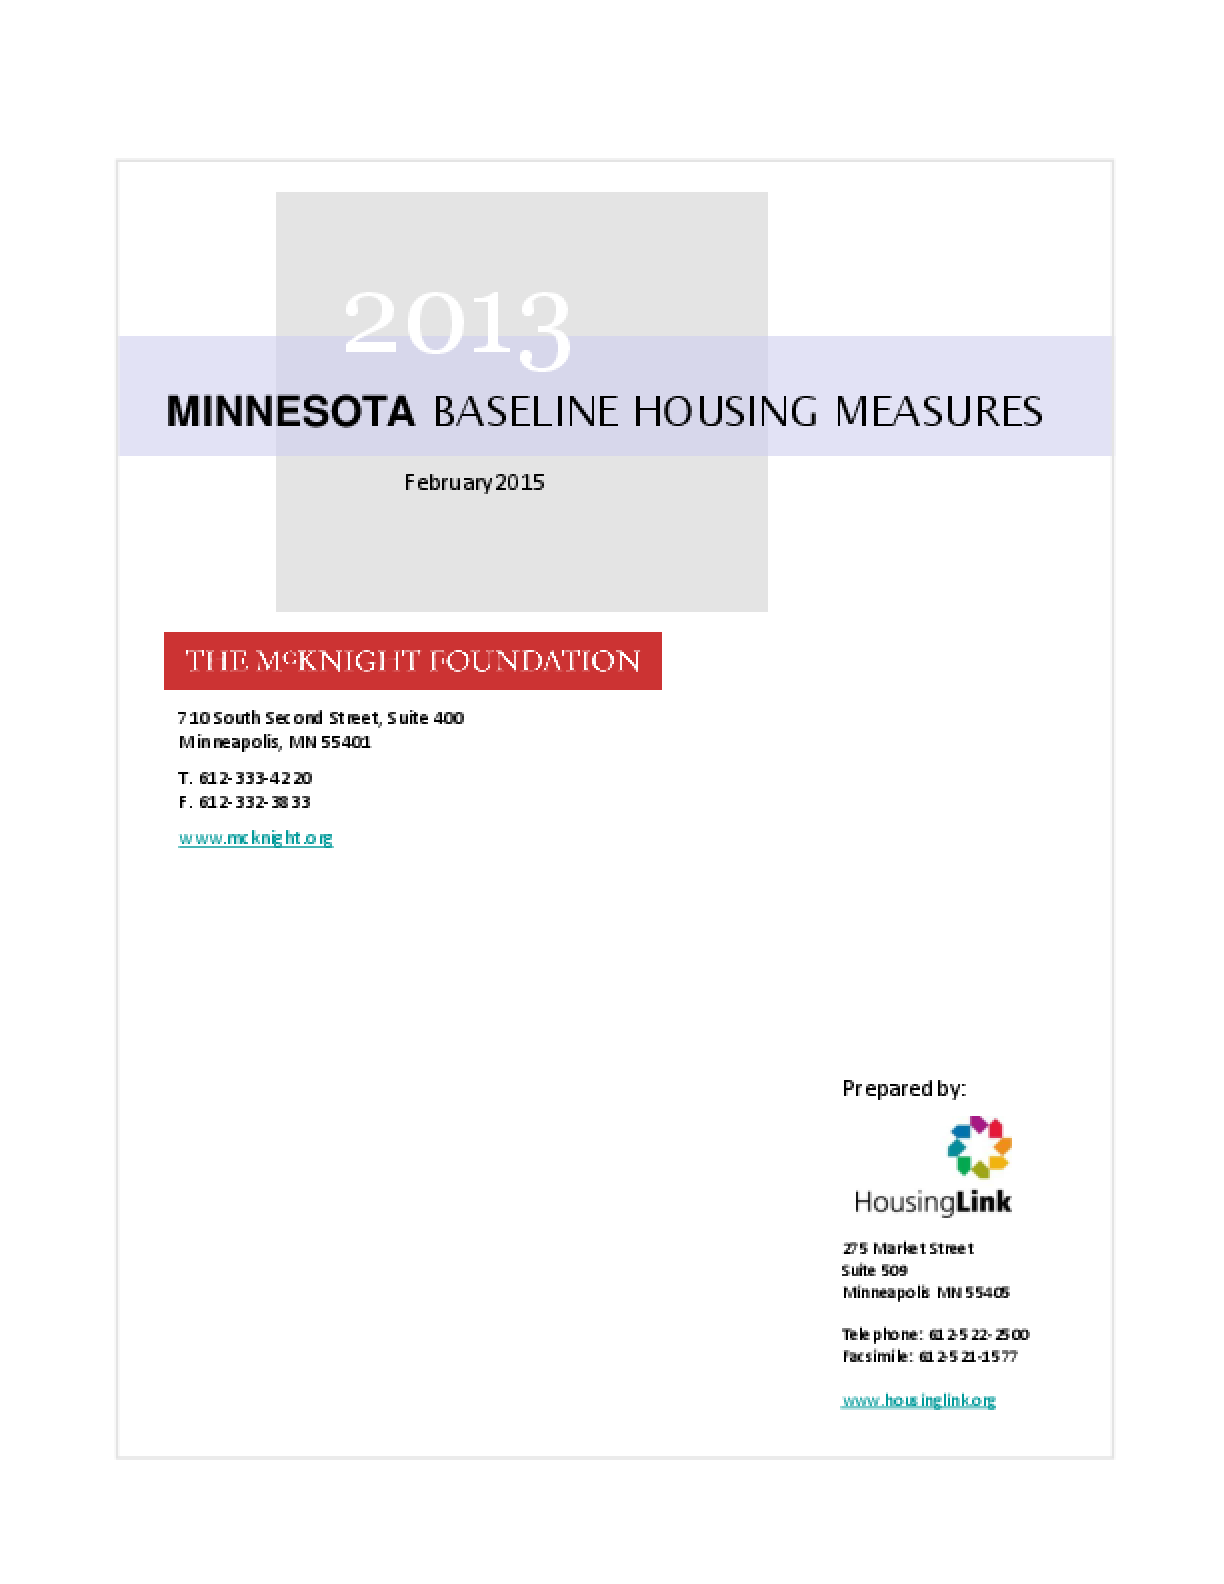 2013 Minnesota Baseline Housing Measures